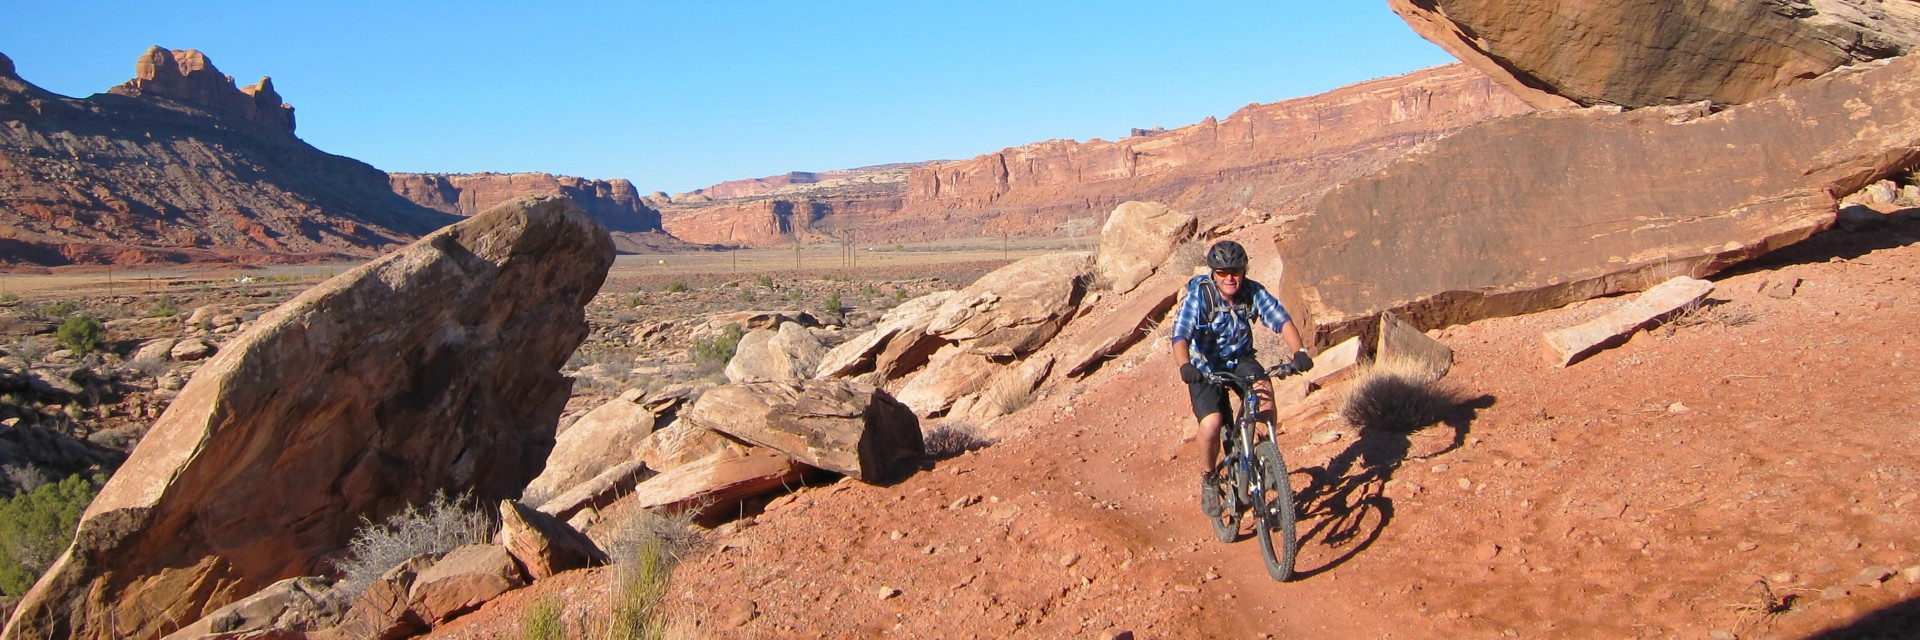 The Moab Brands mtb riding area, north of Moab, UT